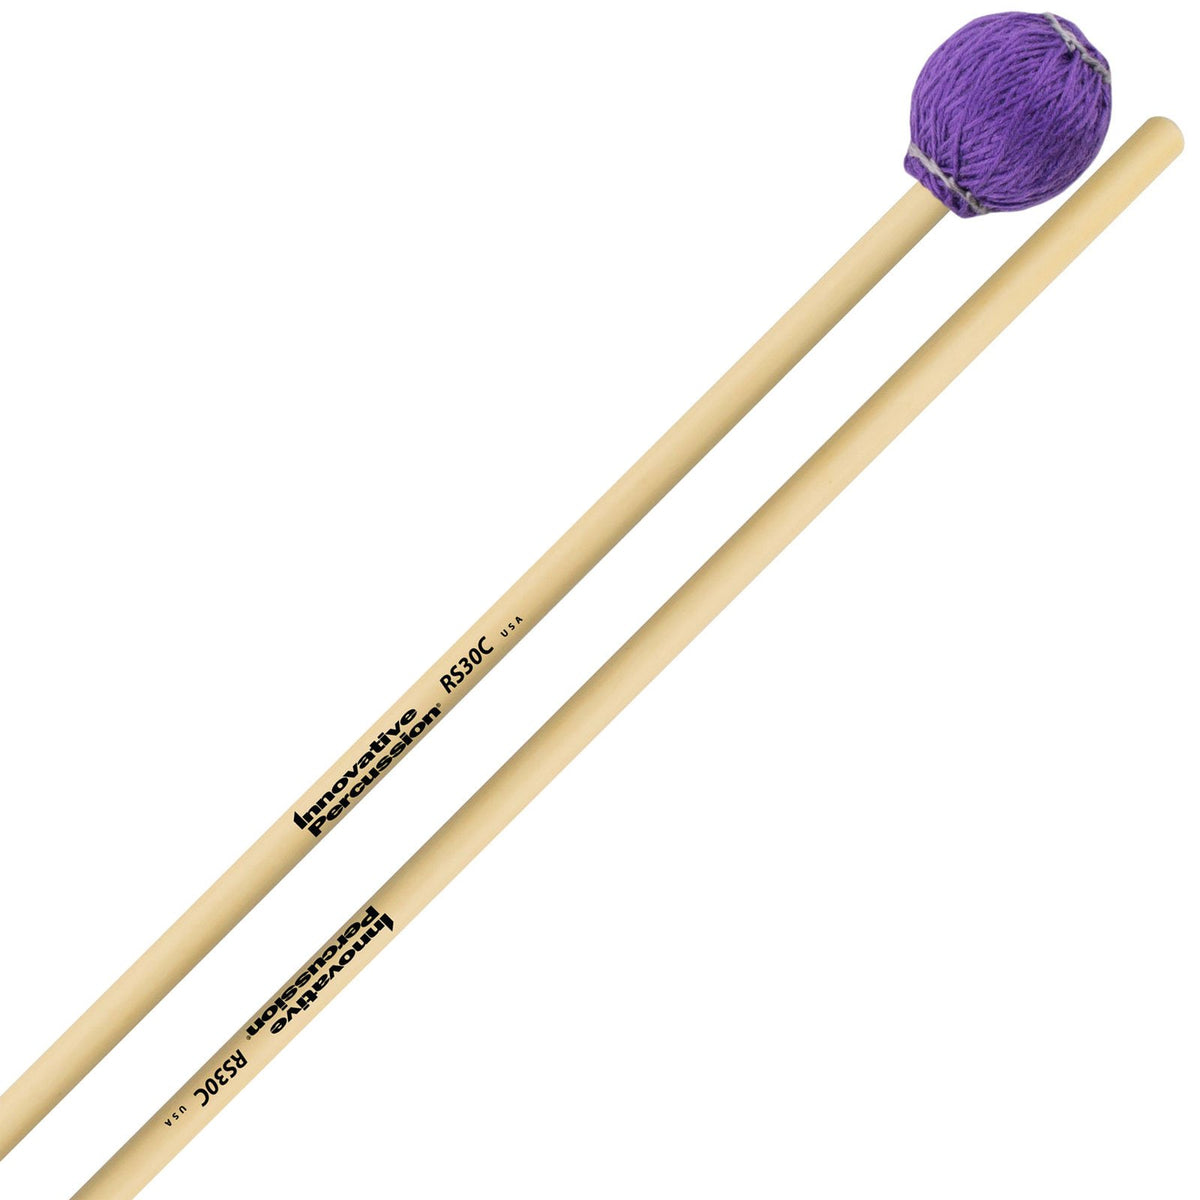 Innovative Percussion - Rattan Series Concert Vibraphone/Marimba Mallets-Percussion-Innovative Percussion-RS30C Medium Hard-Music Elements